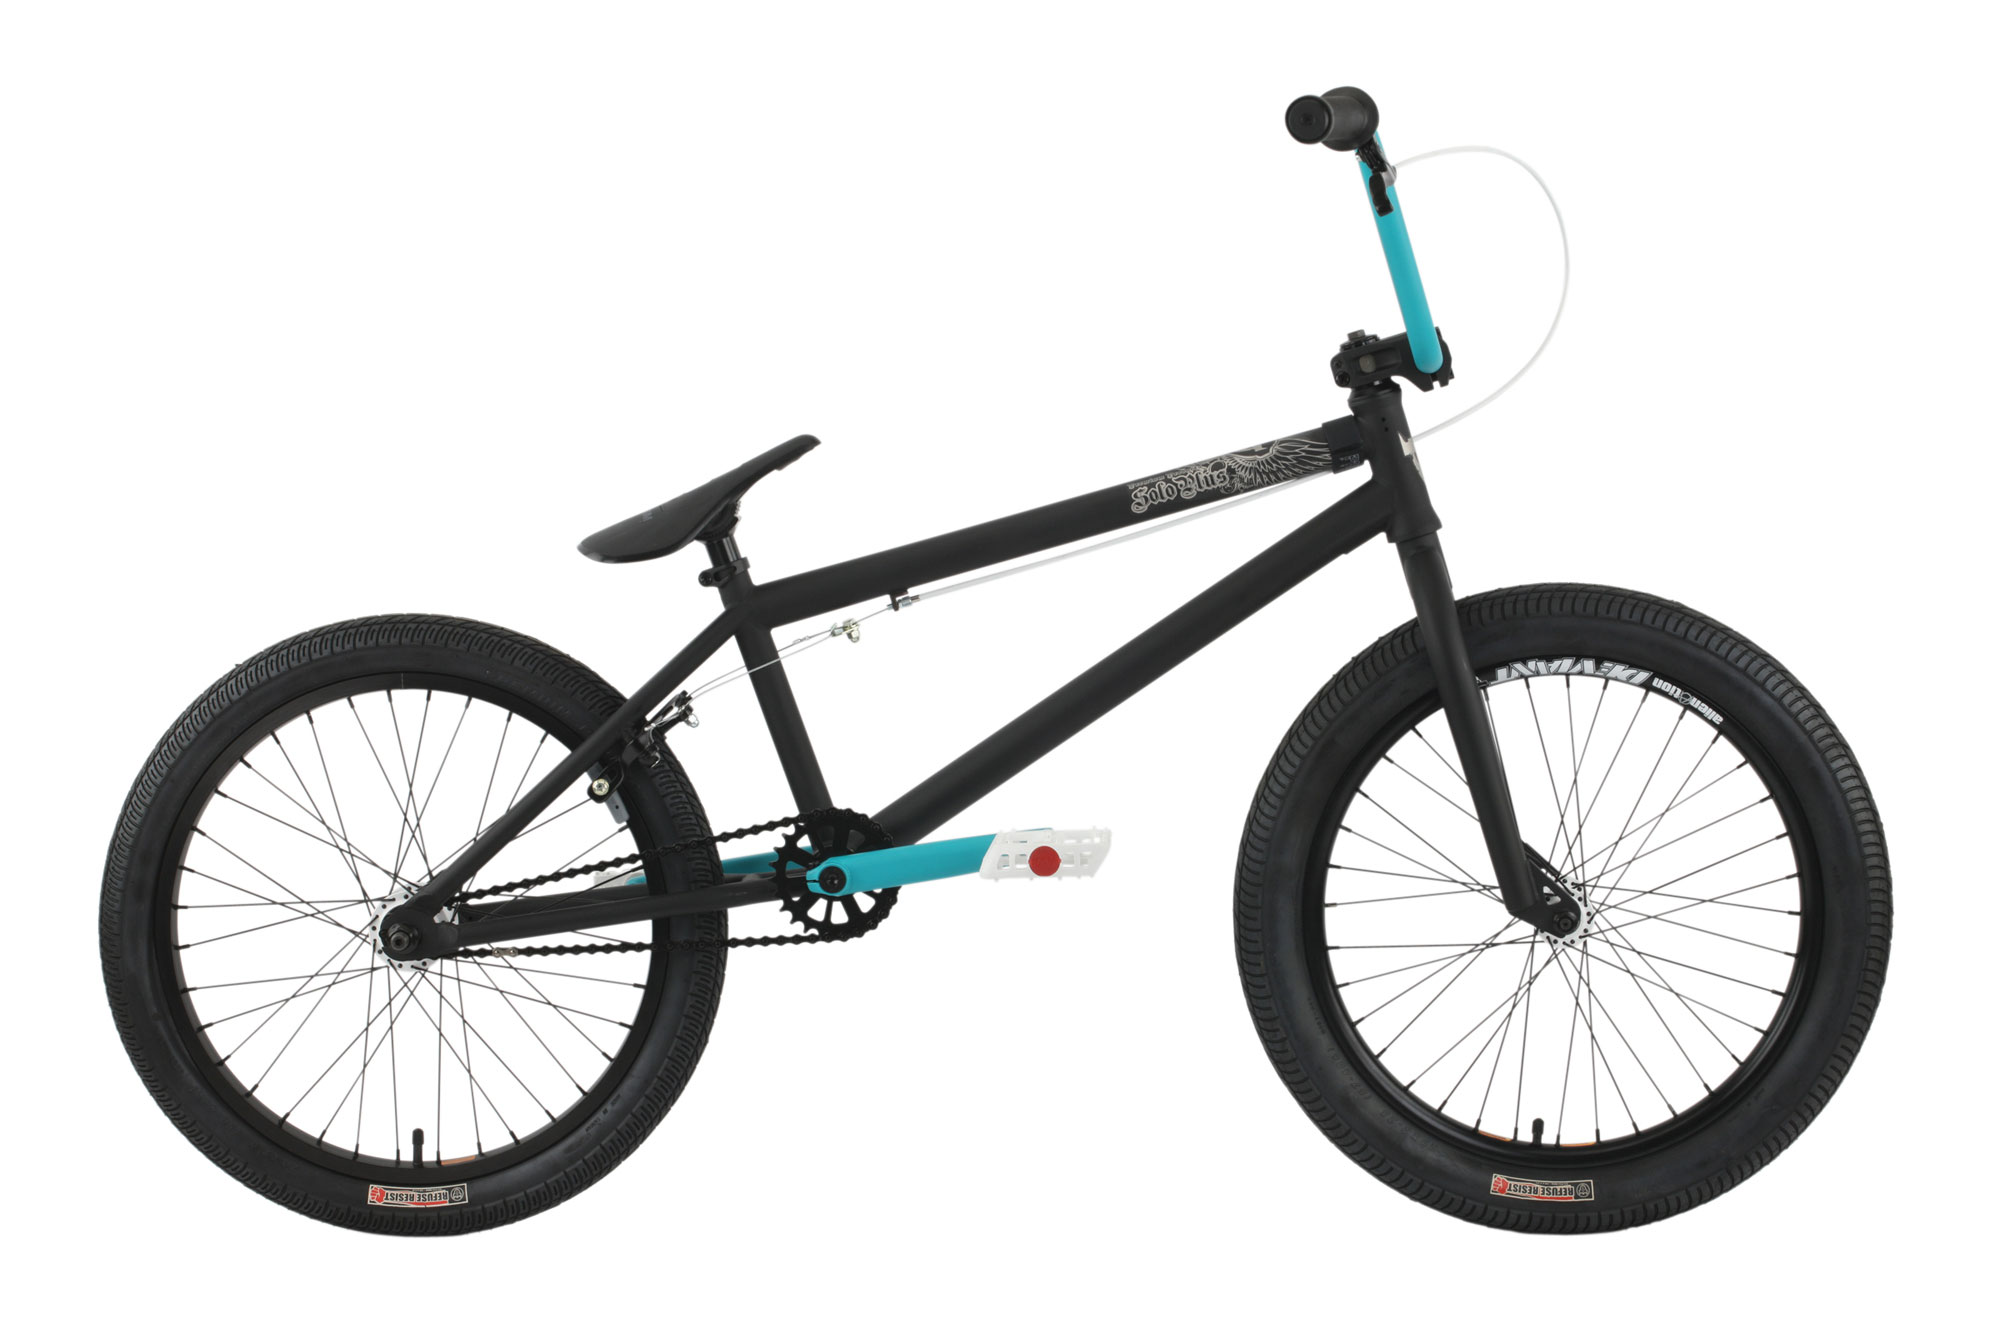 "BMX Key Features of the Premium Solo Plus BMX Bike: Premium Frame With A Chromoly Down Tube, Mid Bb Shell, Internal Head Tube And Removable Brake Mounts Odyssey Twisted Plastic Pedals Premium Plastic Pivotal With Forged Pivotal Post 8""-8.25"" Rise Bar With Alloy Front Load Stem Three-Piece Chromoly Eight-Spline Cranks 175Mm With Mid Sealed Bearing Bb 25/9 Gearing 36H Alloy Sealed Bearing Cassette Hub With 9T Driver And 14Mm Axles Premium Street Tires; 2.25"" Front, 2.0"" Rear Frame Crmo Down Tube, Mid Bb, Internal Ht – 20?, 20.5? Or 21? Tt Fork 1 1/8? Crmo Steer Tube – Threadless Grip Premium Counterfeit Handlebar Premium Hi-Ten – 8? Rise Crankset 3 Pc. Tublar Crmo 175Mm W/Sealed Mid Bb Gearing 25/9 W/Sealed Bearing Cassette One Piece 9T Driver Tires Premium Street Tires, 2?X2.25? F / 20×2.0? R Hubset 36H 3/8? F / Alloy Loose Ball Cassette 14Mm Axle R Rims 36H Alienation Pbr Alloy Sw Front And Rear Seat/Post Premium Pivotalastic Seat W/ Pivotal Post Pedals Odyssey Twisted Plastic Pedals Rotor N/A Straight Cable Pegs N/A - $347.95"